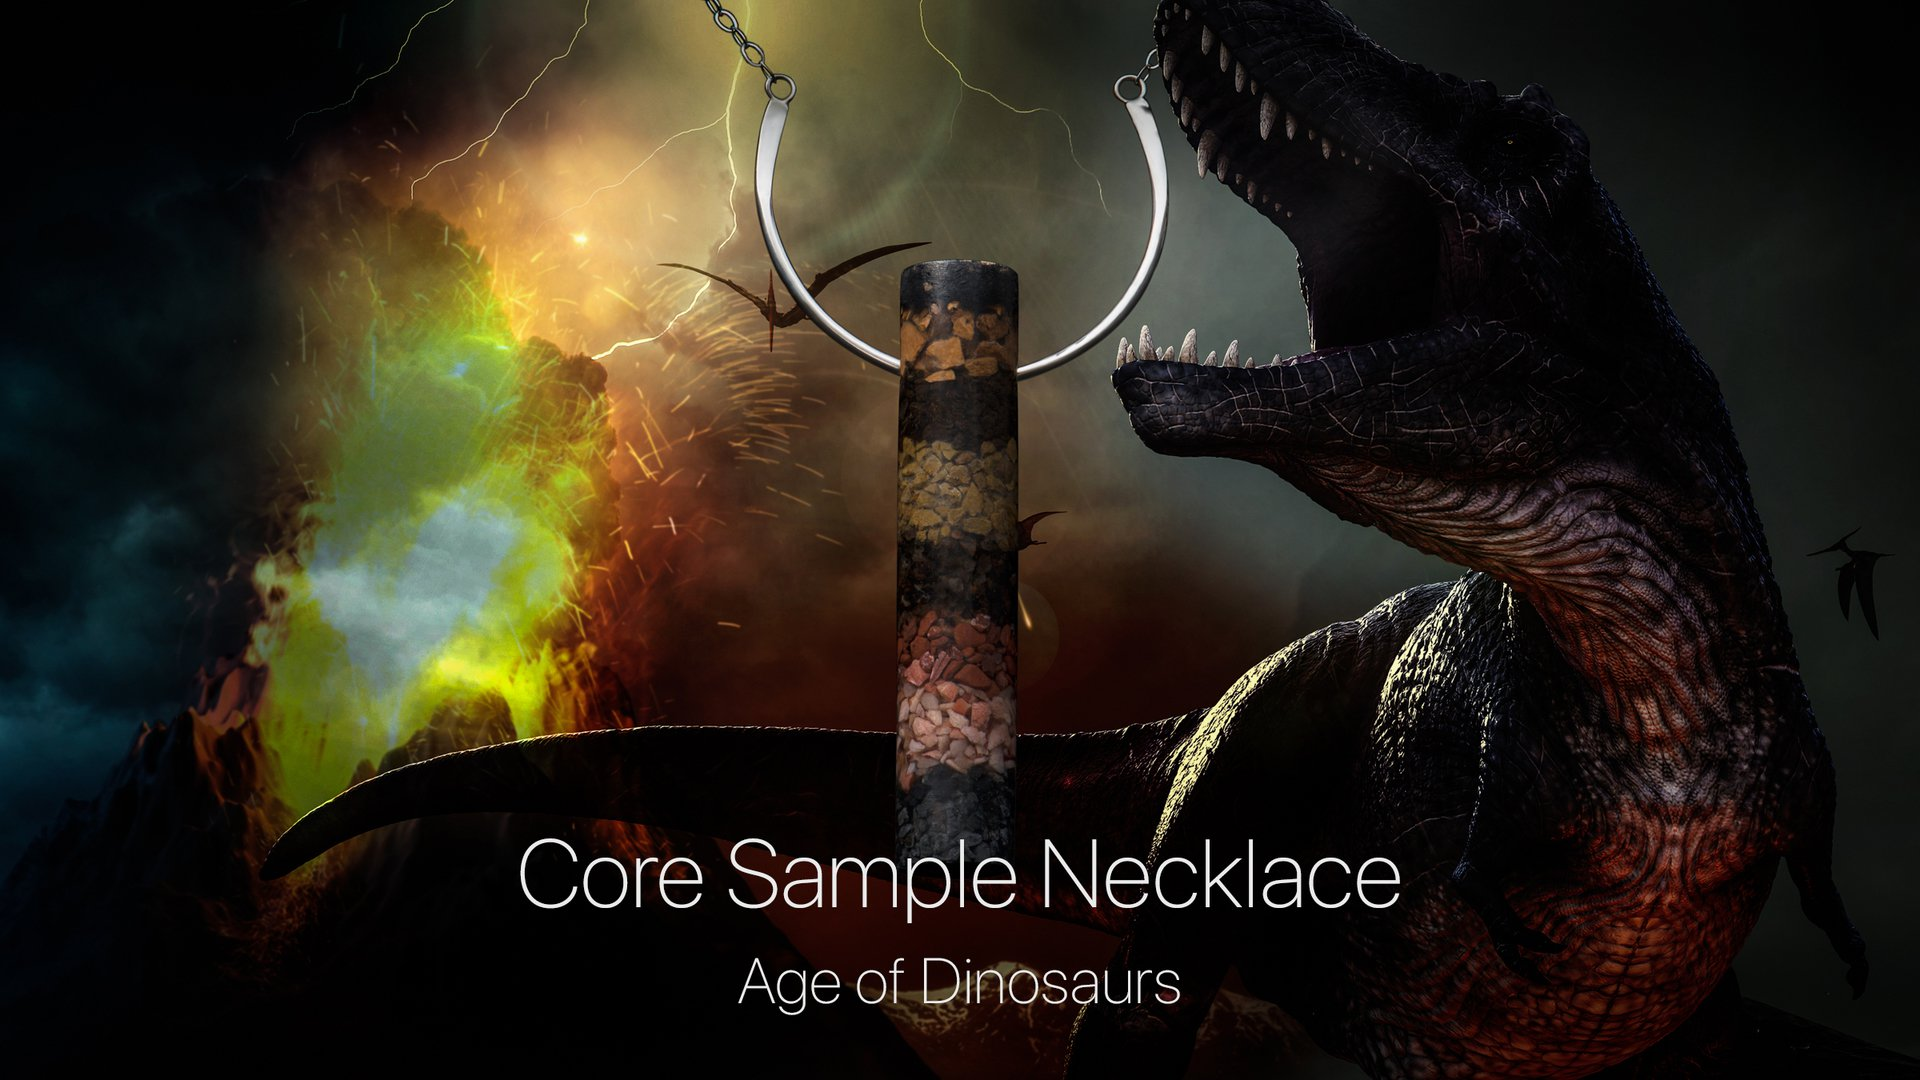 Details about the Core Sample Age of Dinosaurs